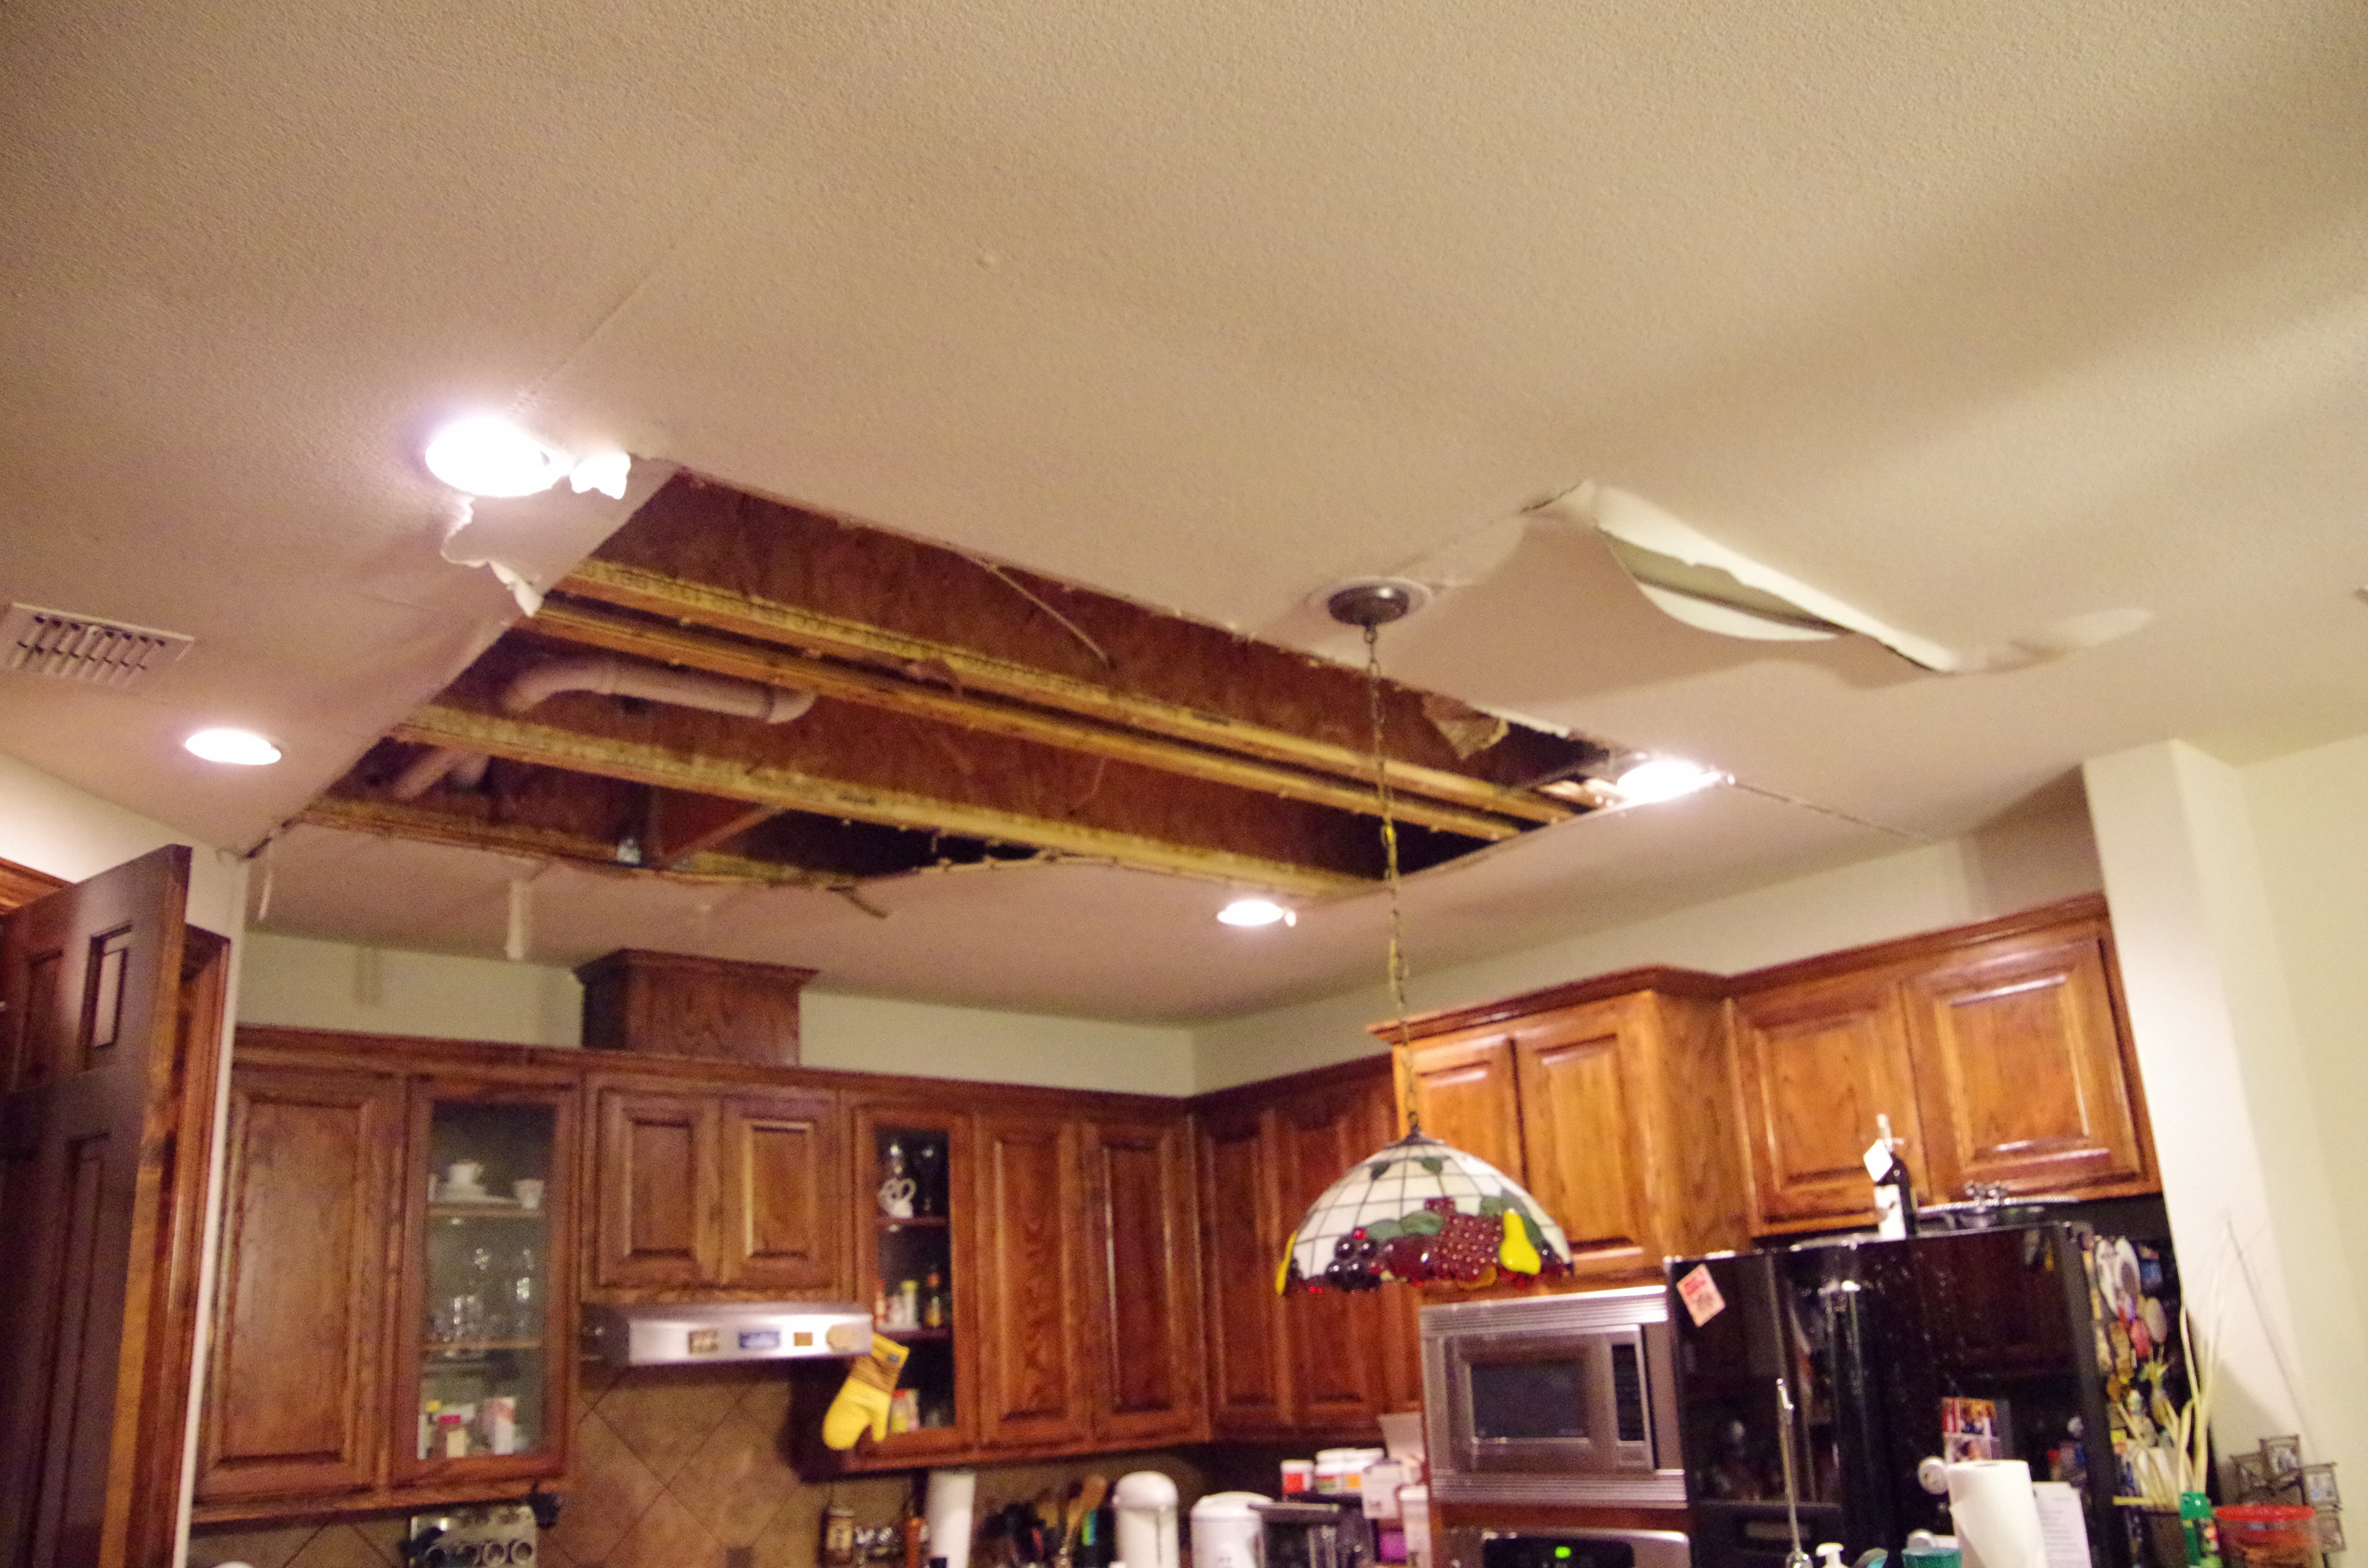 Kitchen Ceiling water damage - Dalworth Restoraration